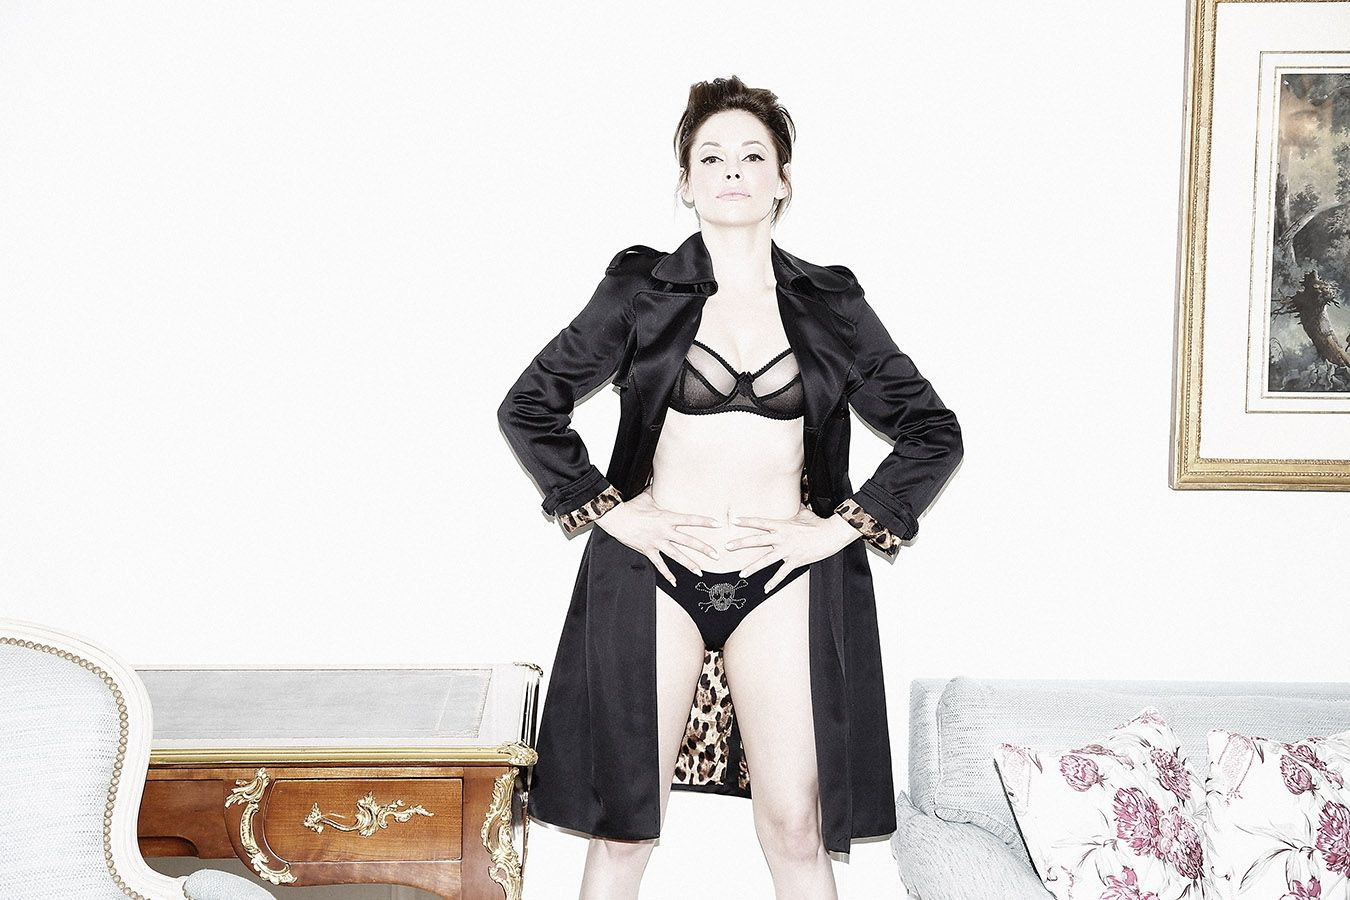 Rose McGowan Nude Leaked thefappening.nu 75